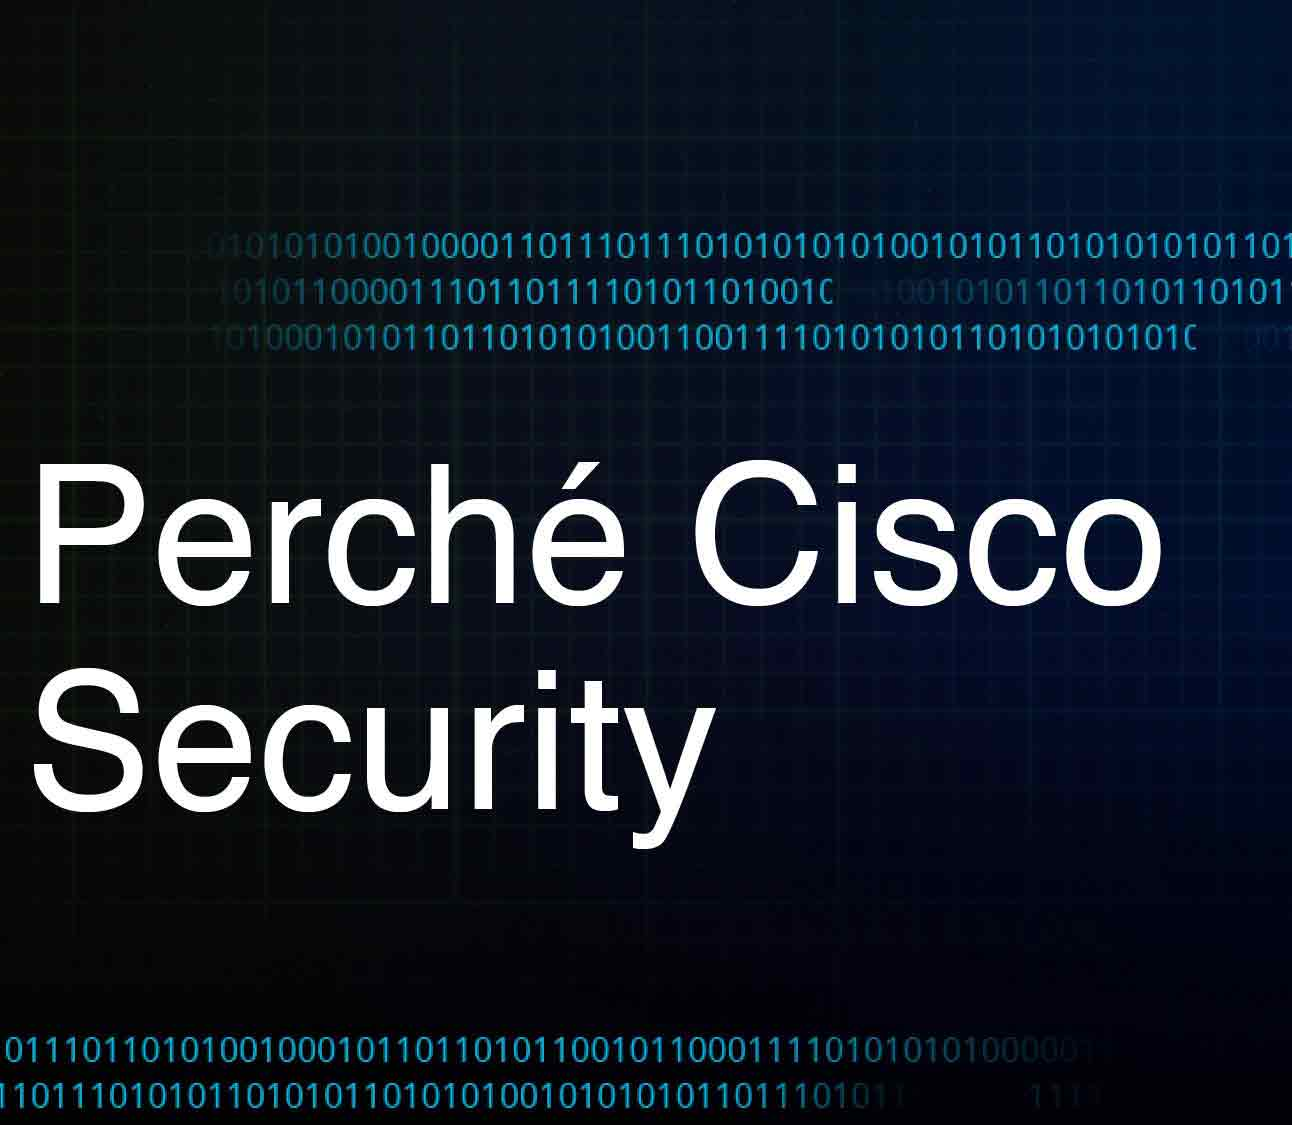 Perché Cisco Security Featured Image